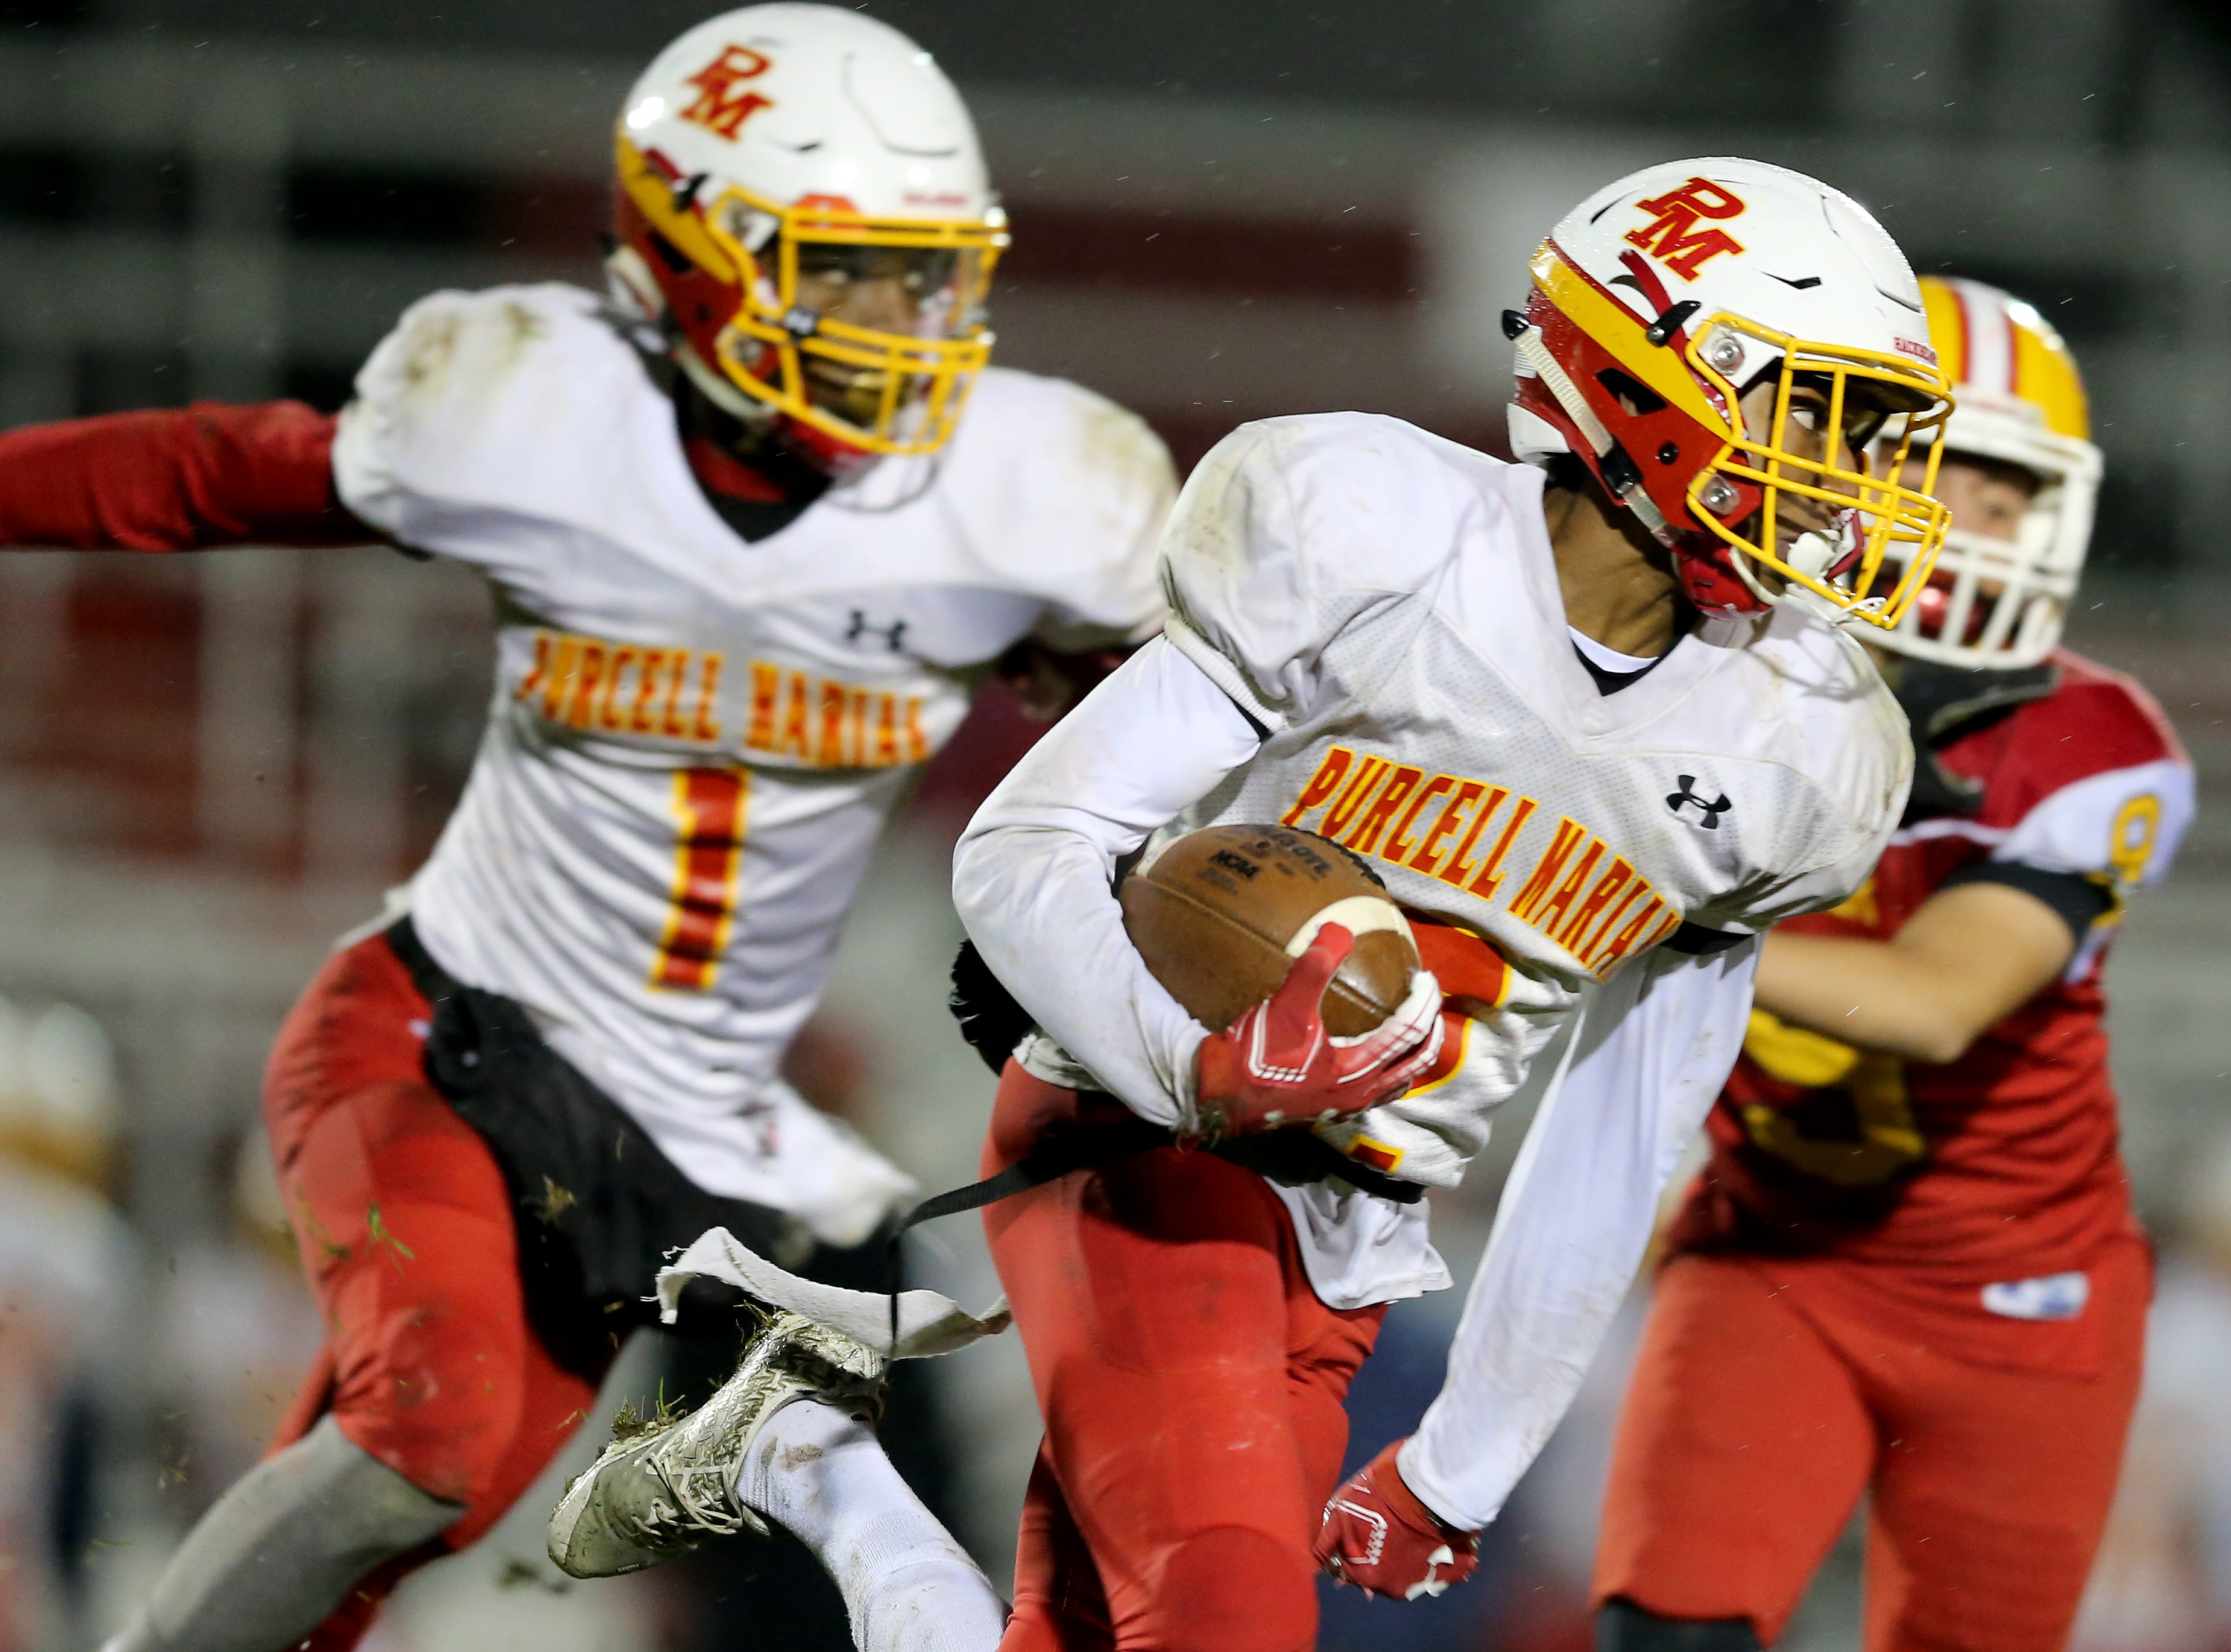 Purcell Marian wide receiver Laurence Christian (2) returns a kickoff in the third quarter during a high school football game between Purcell Marian and Bishop Fenwick, Friday, Oct. 12, 2018, at Bishop Fenwick High School in Middletown, Ohio.